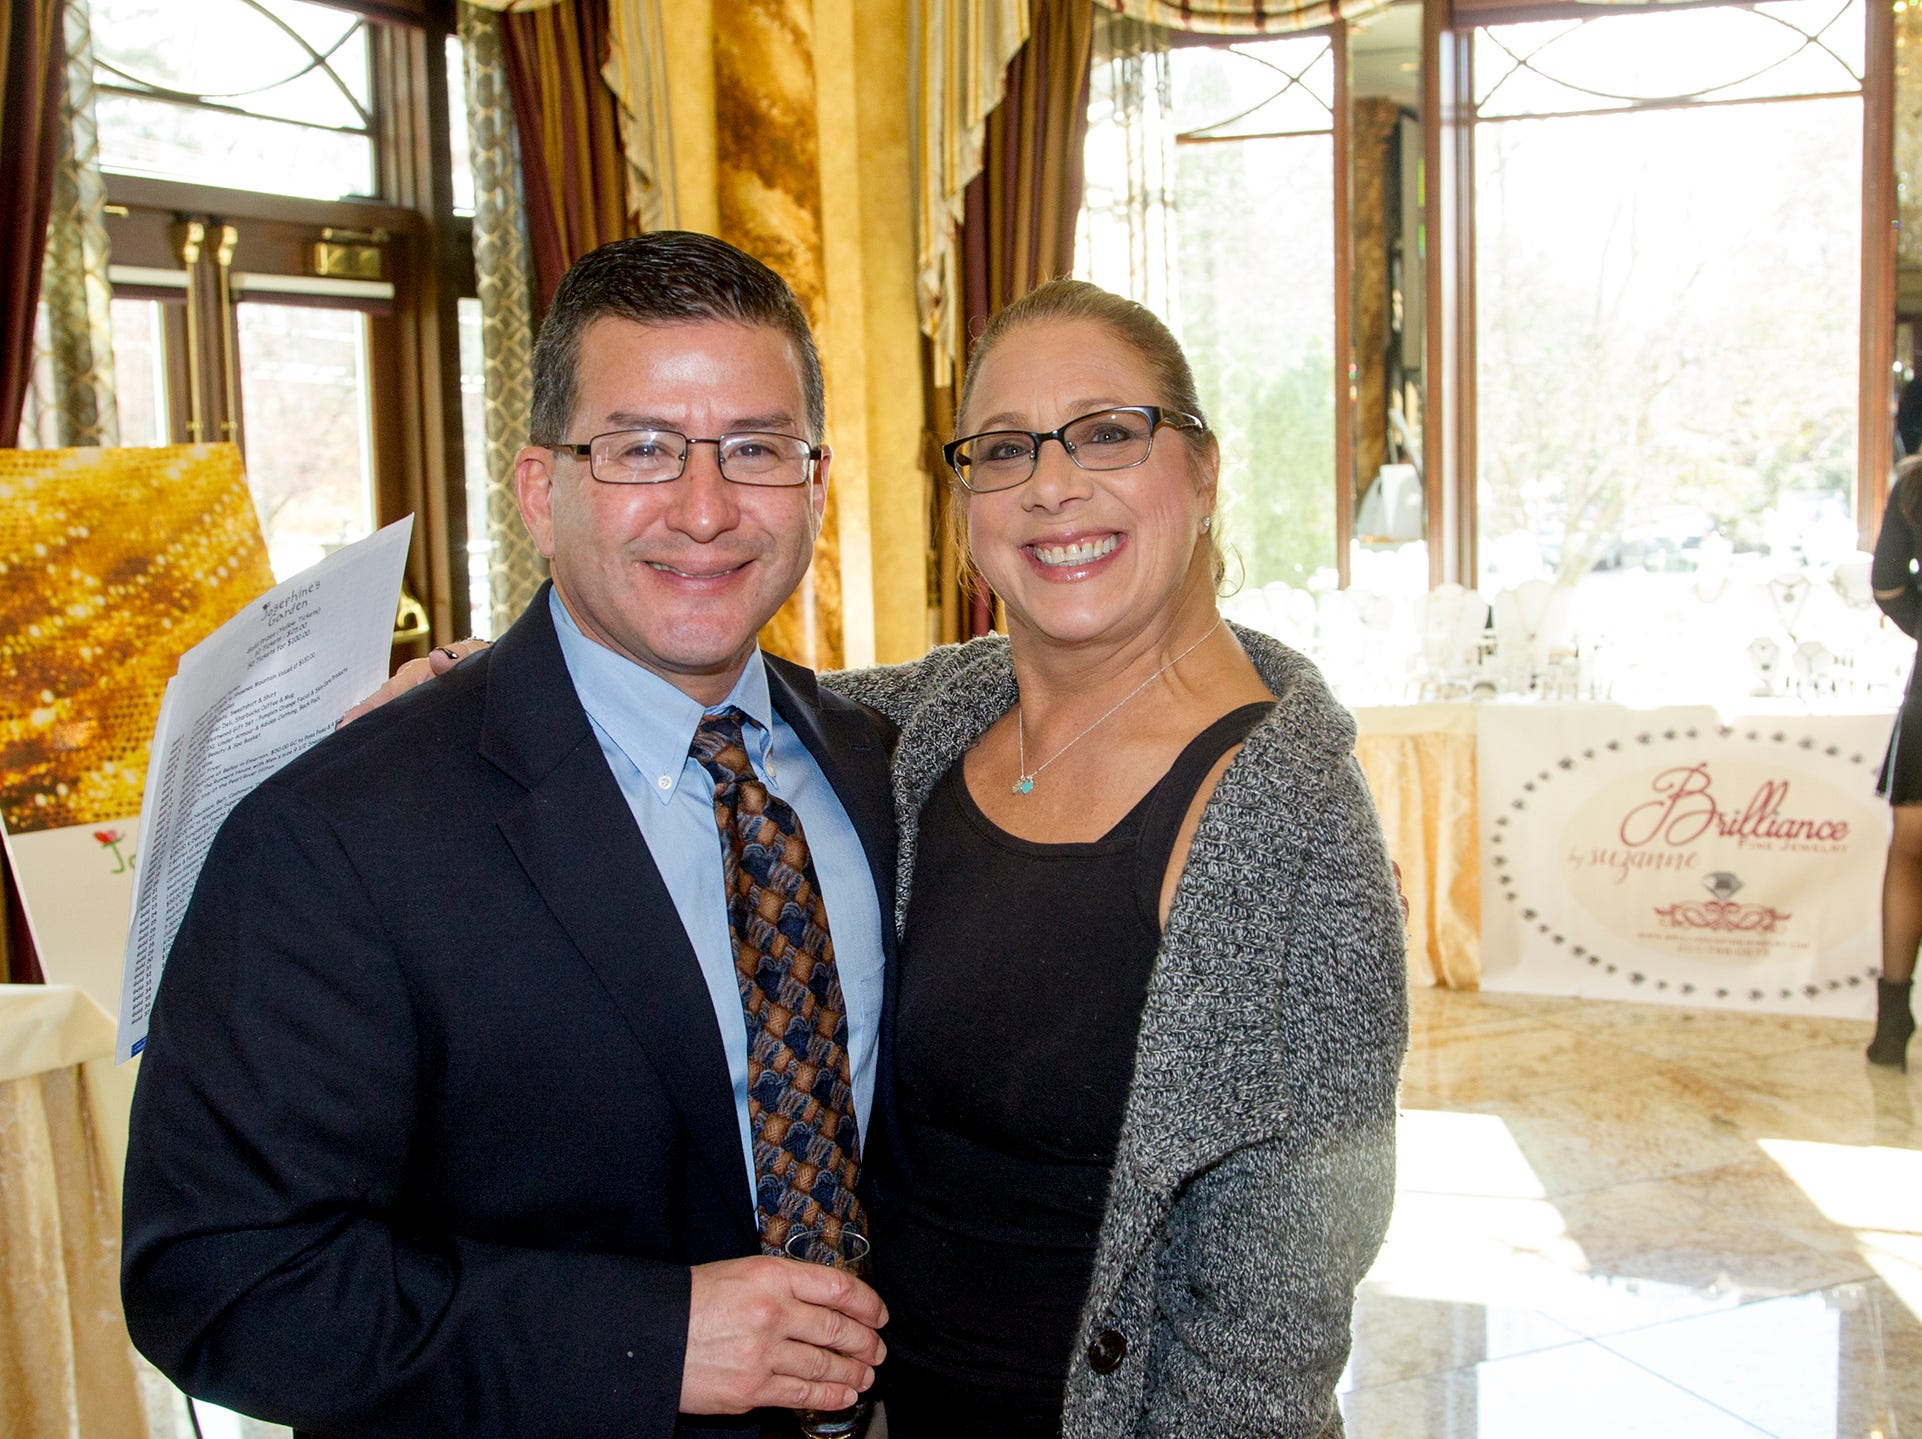 John Azua, Edie Orlando. Josephine's Garden, part of Hackensack Meridian Health, held its luncheon gala at Season's in Washington Township. The mission of this organization is to provide a place of respite, joy and hope to children battling cancer. 11/14/2018